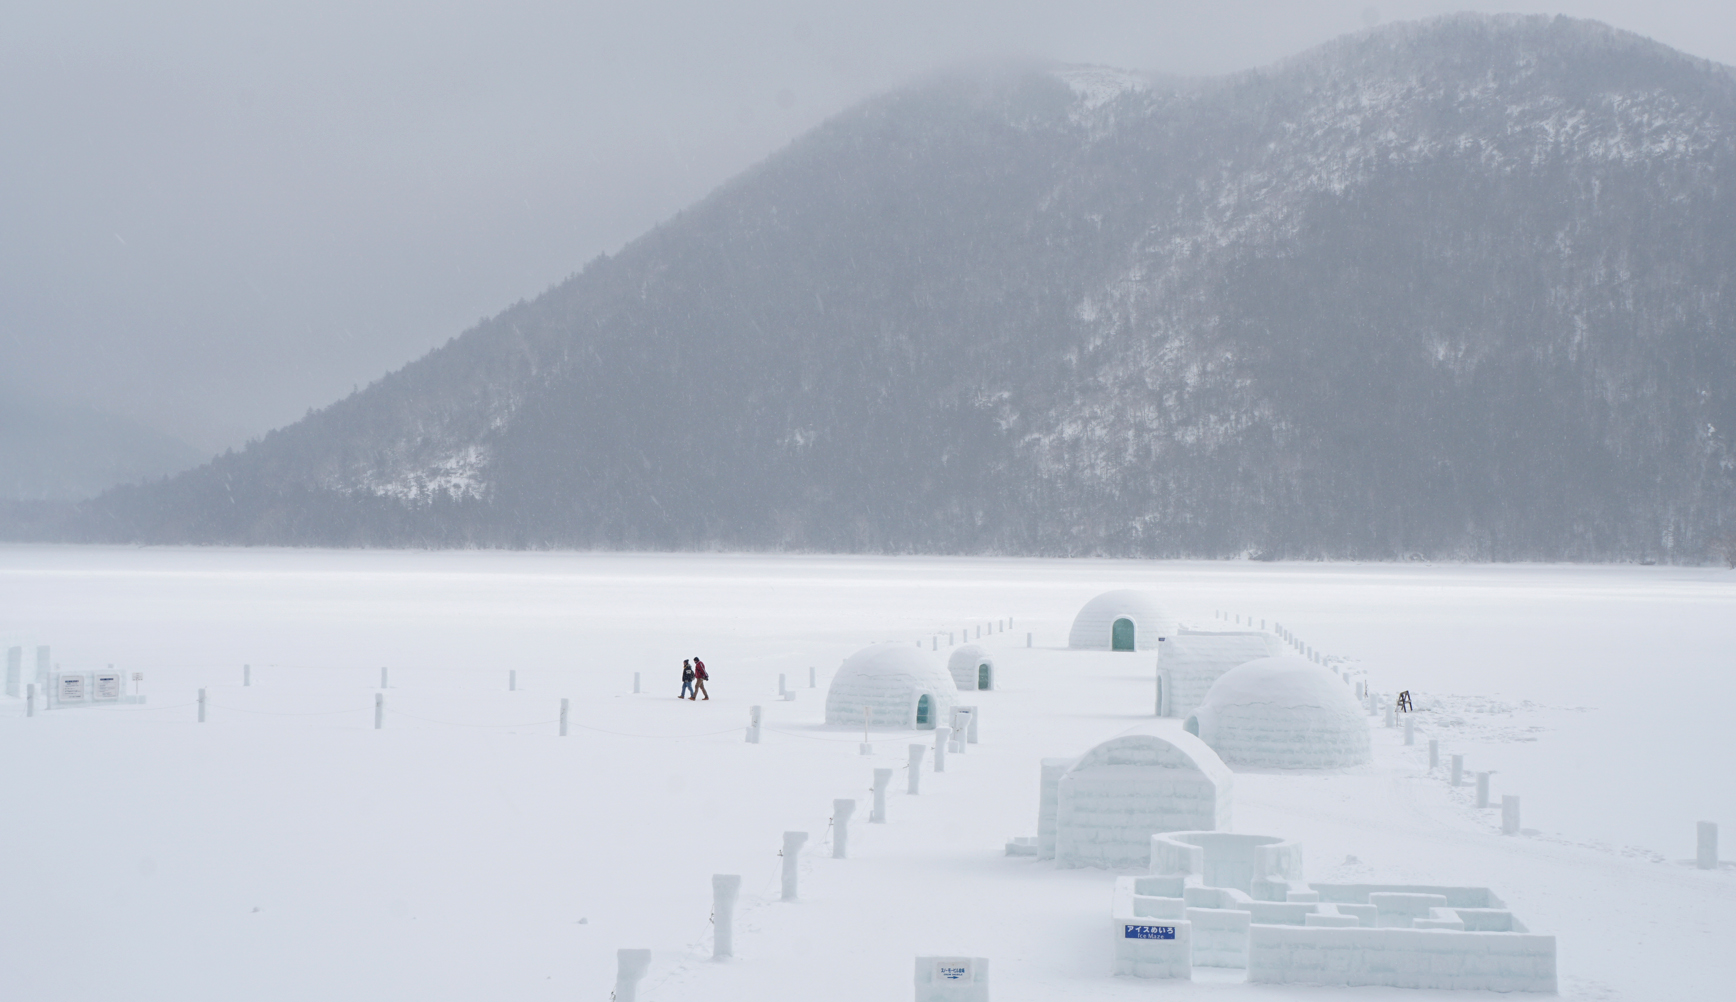 Ice Village on Lake Shikaribetsu, Japan